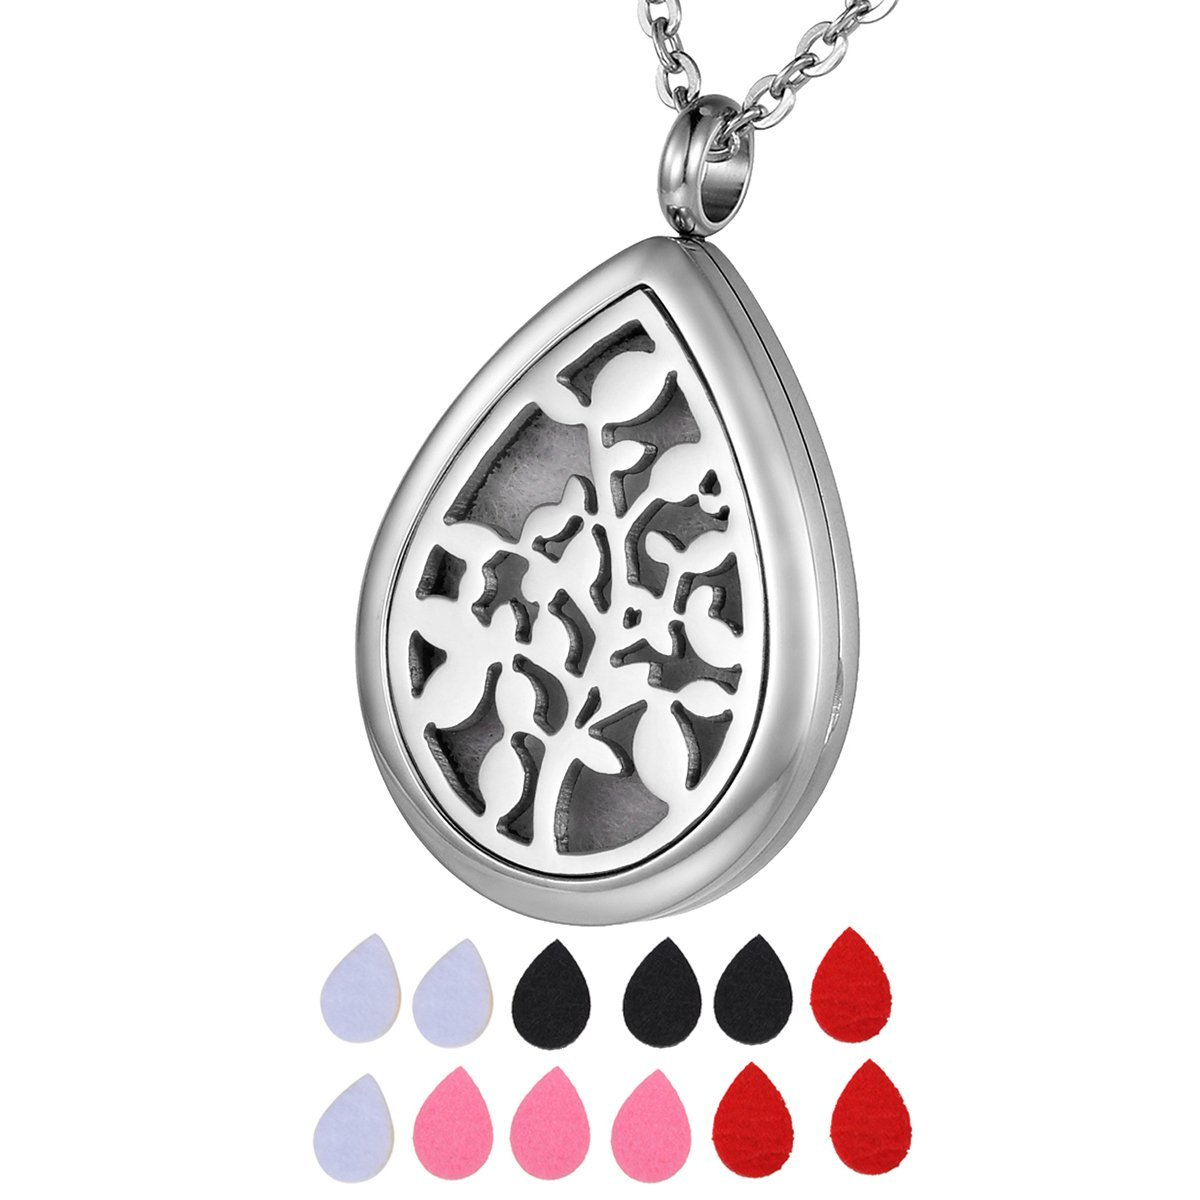 HOUSWEETY Aromatherapy Essential Oil Diffuser Necklace Hypo-Allergenic Stainless Steel Locket Teardrop Pendant Necklace HOUSWEETYB104686